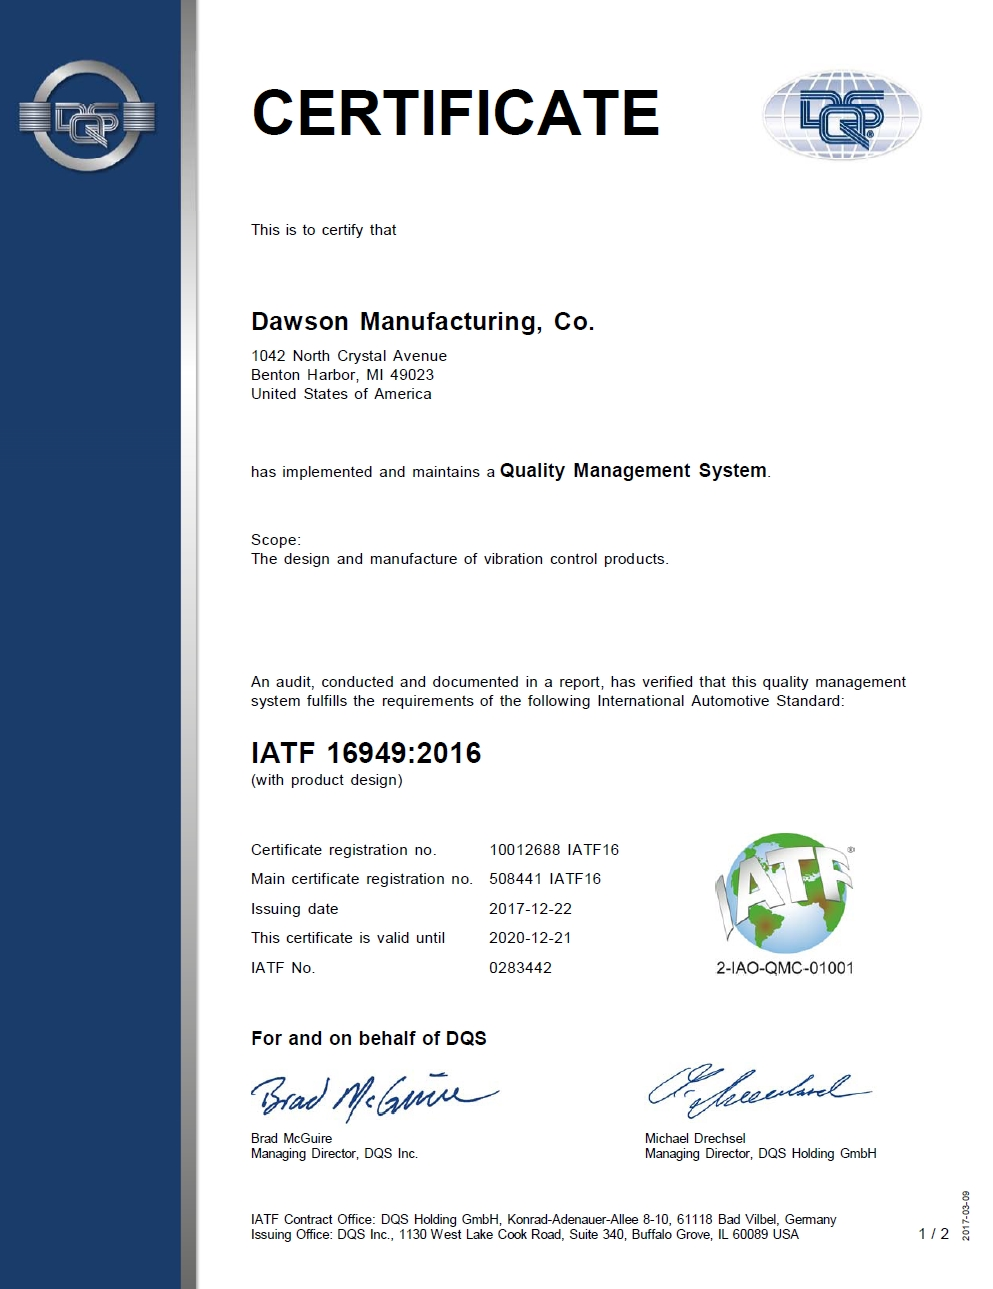 Dawson Mfg. Co. TS 16949 : 2016 Certificate